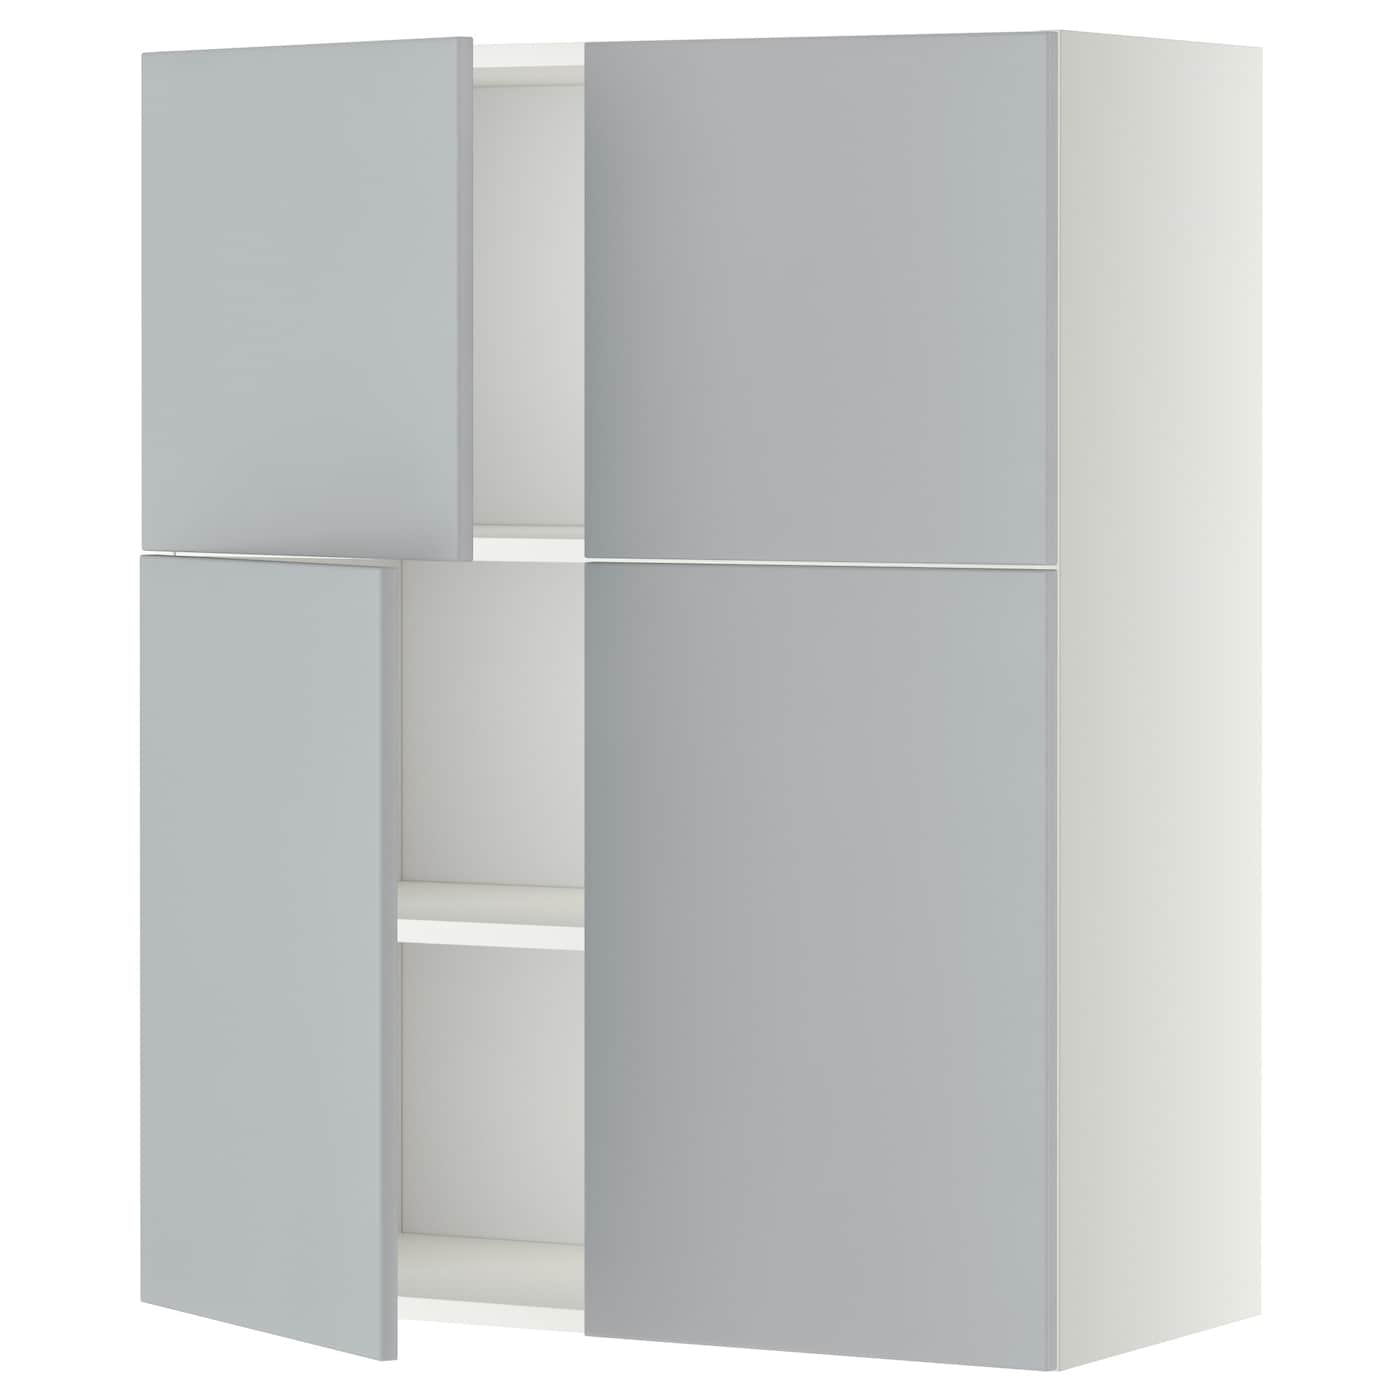 Metod Wall Cabinet With Shelves 4 Doors White Veddinge